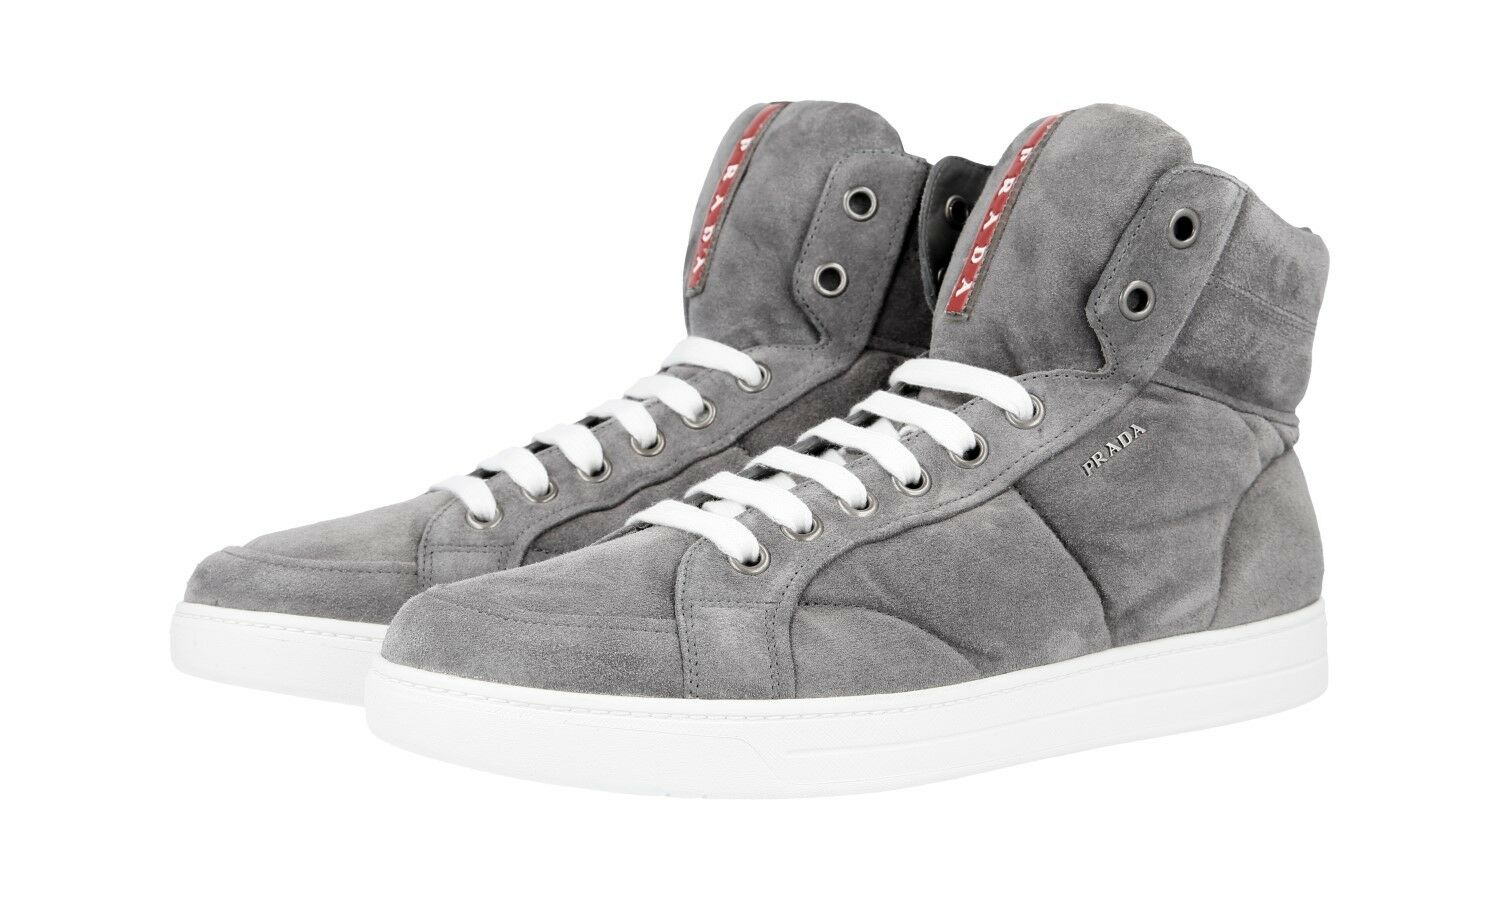 a9aa34b8c53 AUTH PRADA HIGH-TOP SNEAKERS SHOES 4T2596 GREY SUEDE US 7 nsmyly6797 ...